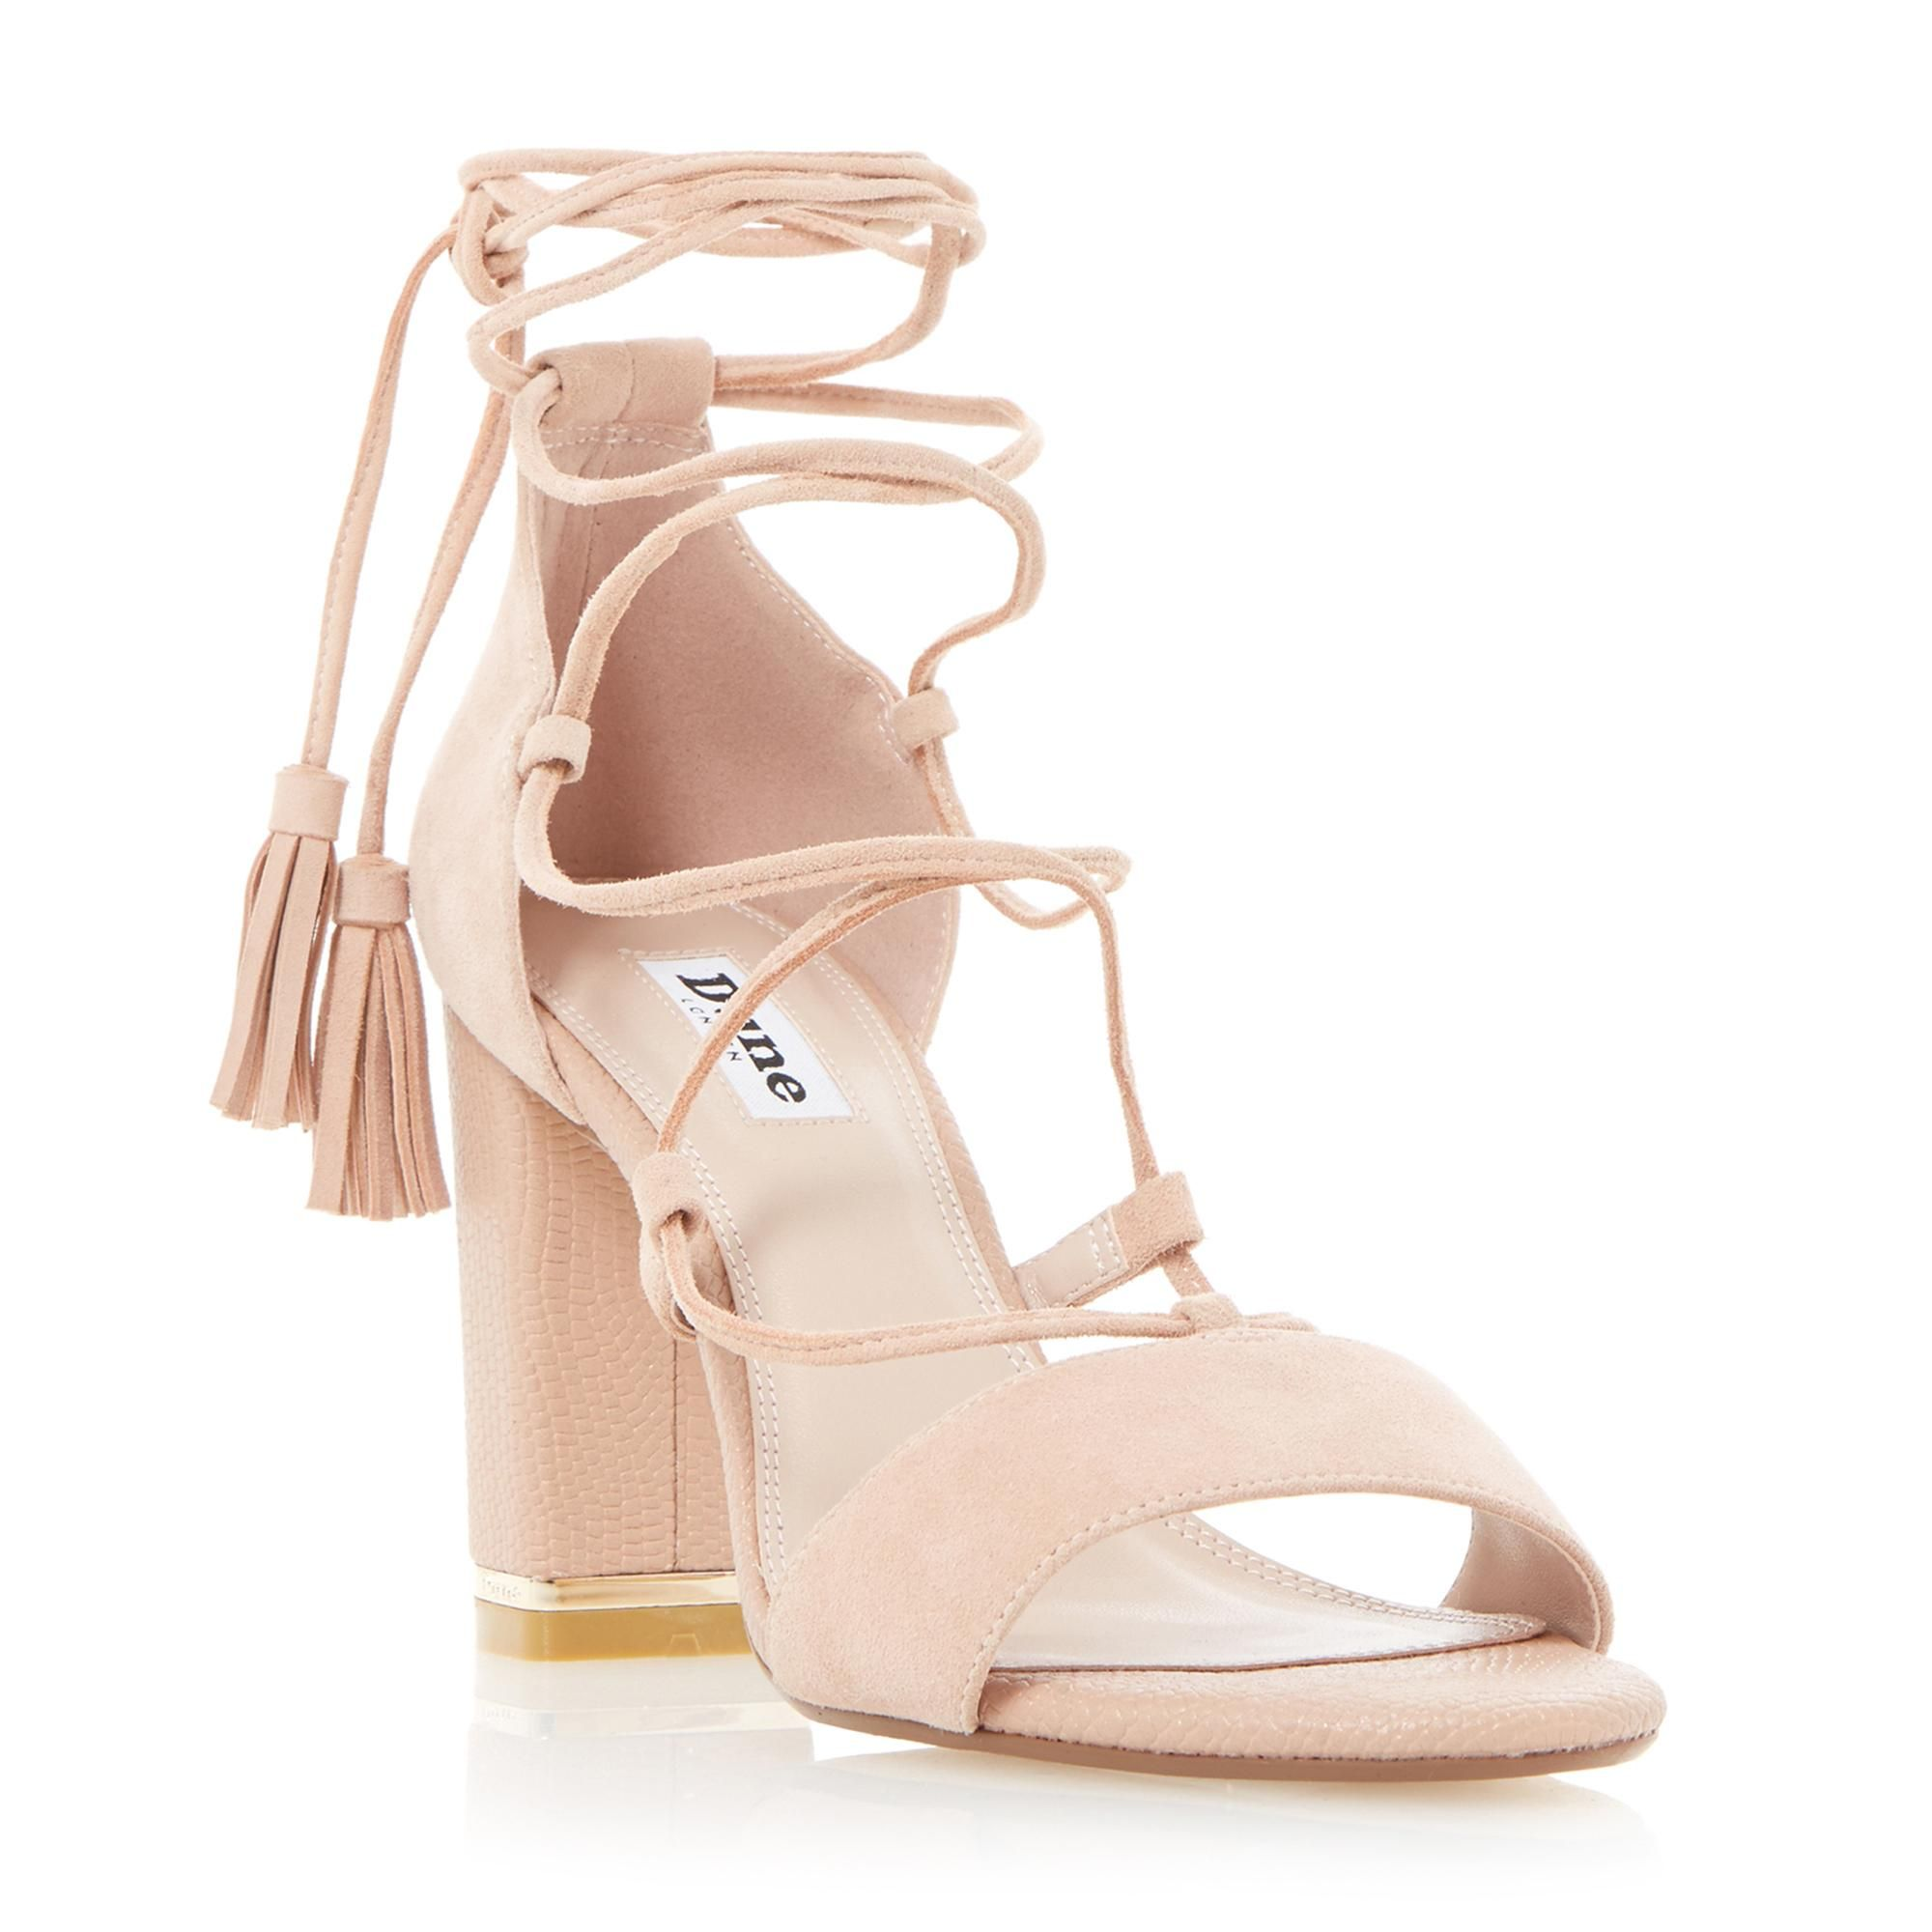 ce967bf2e124 DUNE LADIES MARGO - Ghillie Lace Up Block Heel Sandal - blush | Dune Shoes  Online